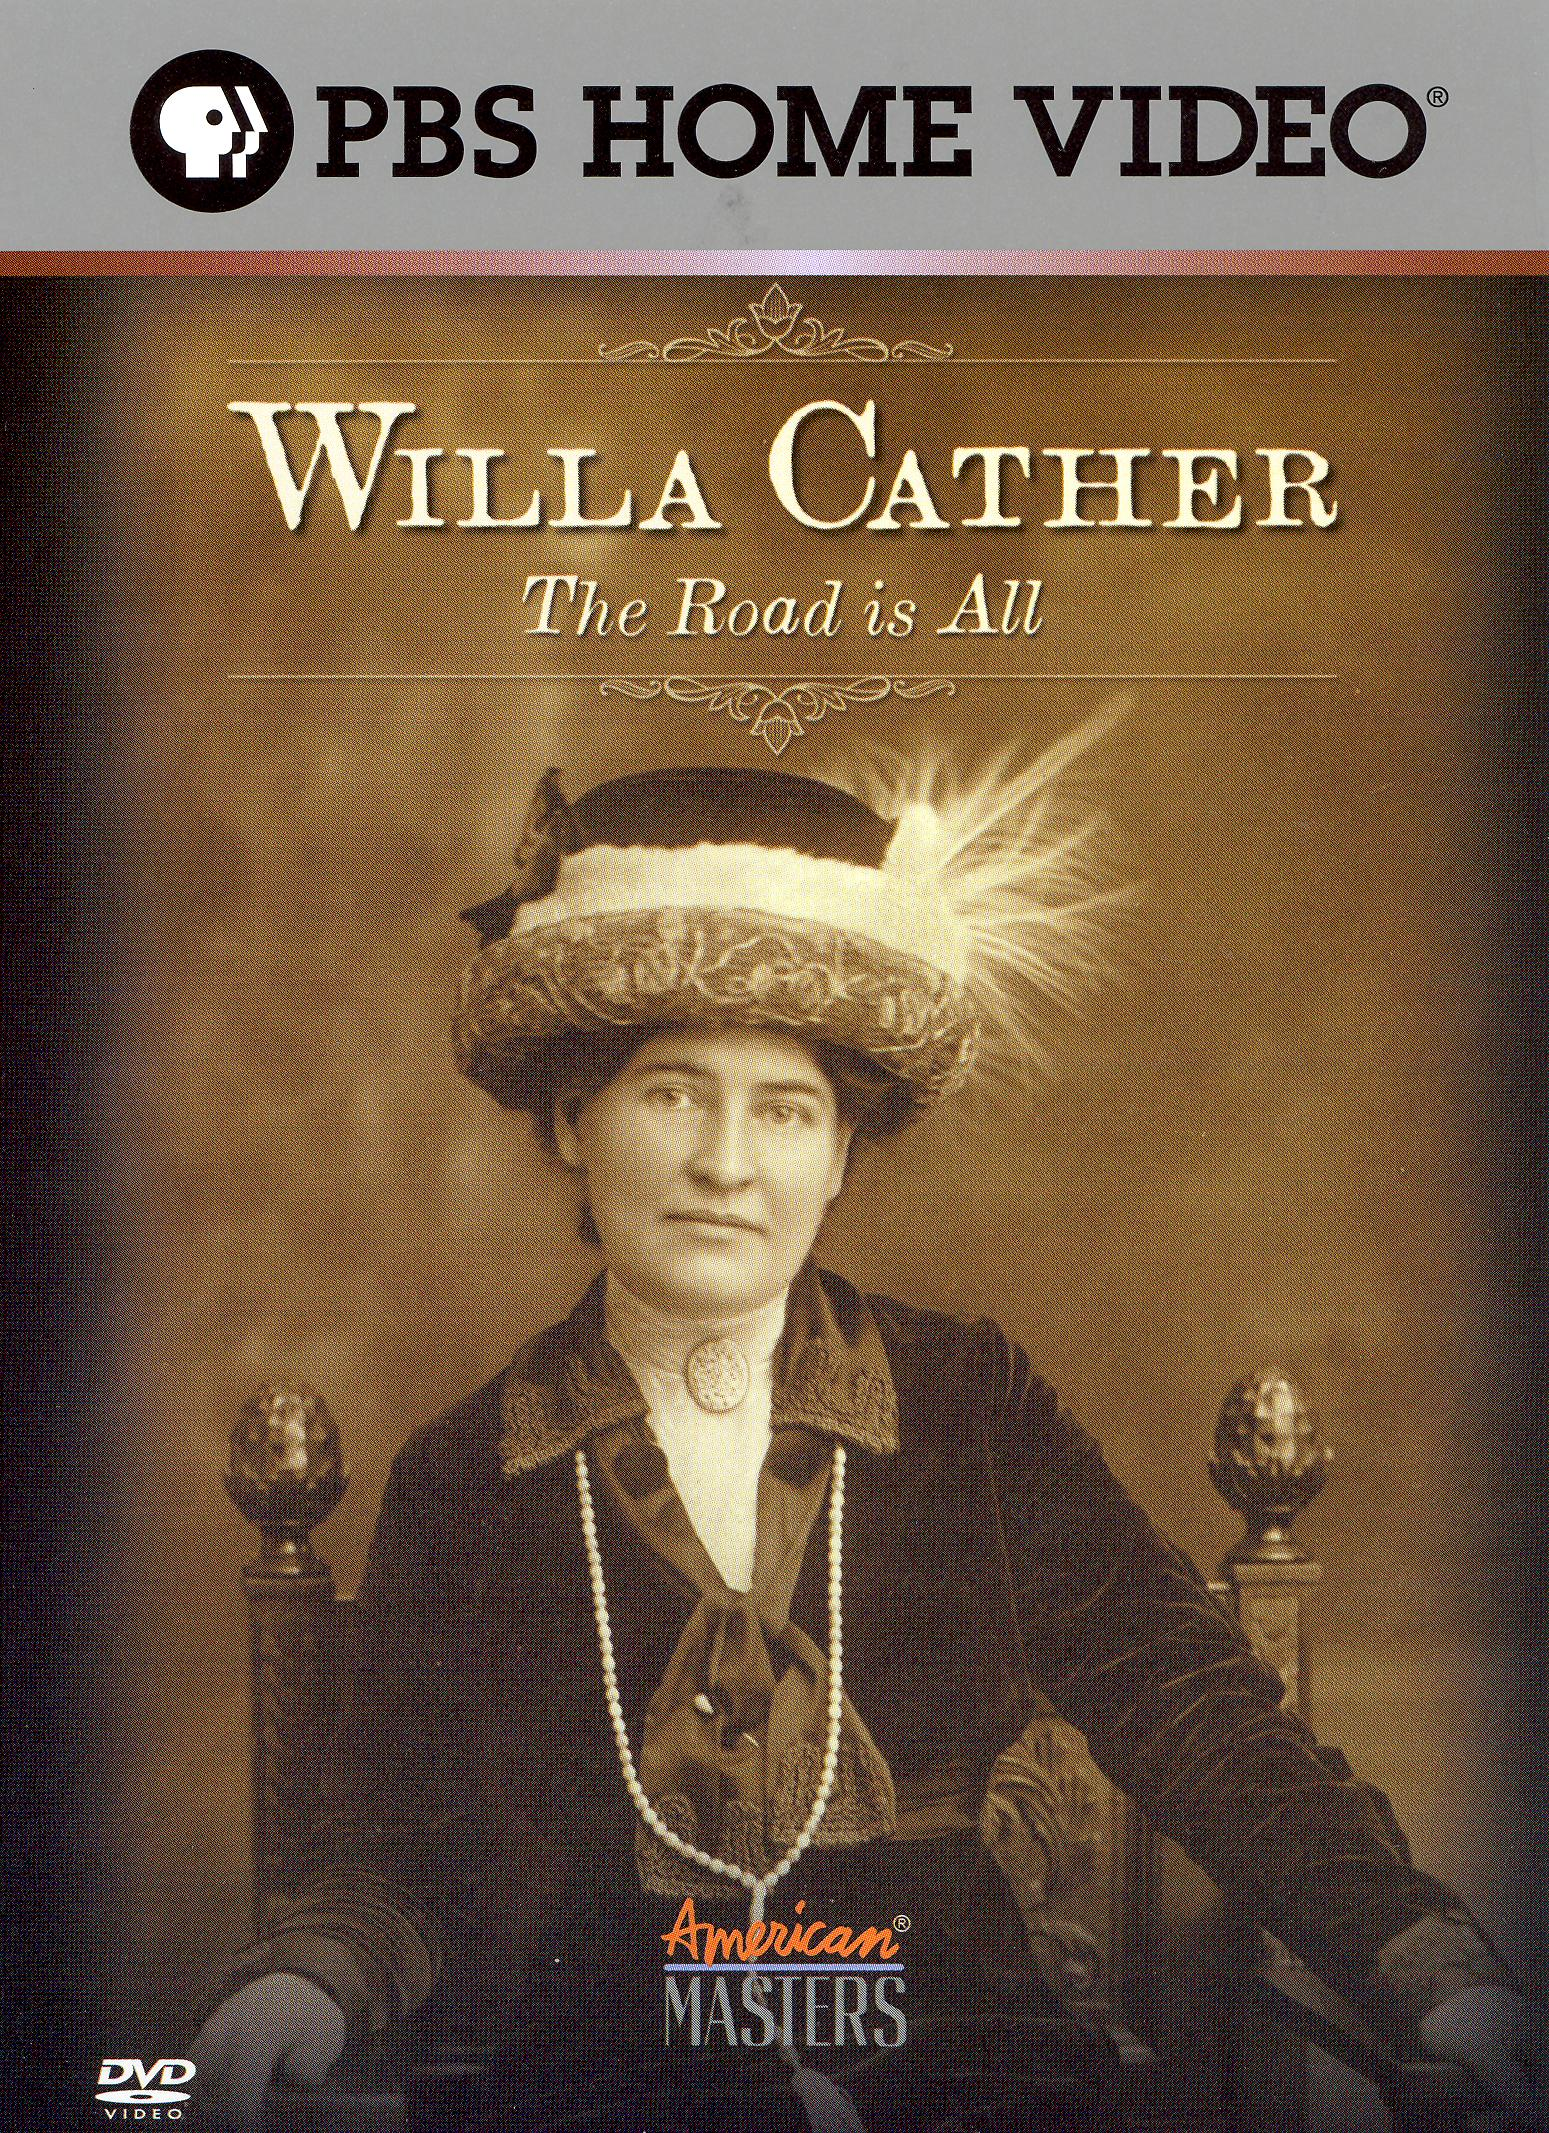 an analysis of the themes and writing style of willa cather Willa cather was born in willa cather: biography & writing you are along with her original style and theme willa cather is a heroic person who dedicated.